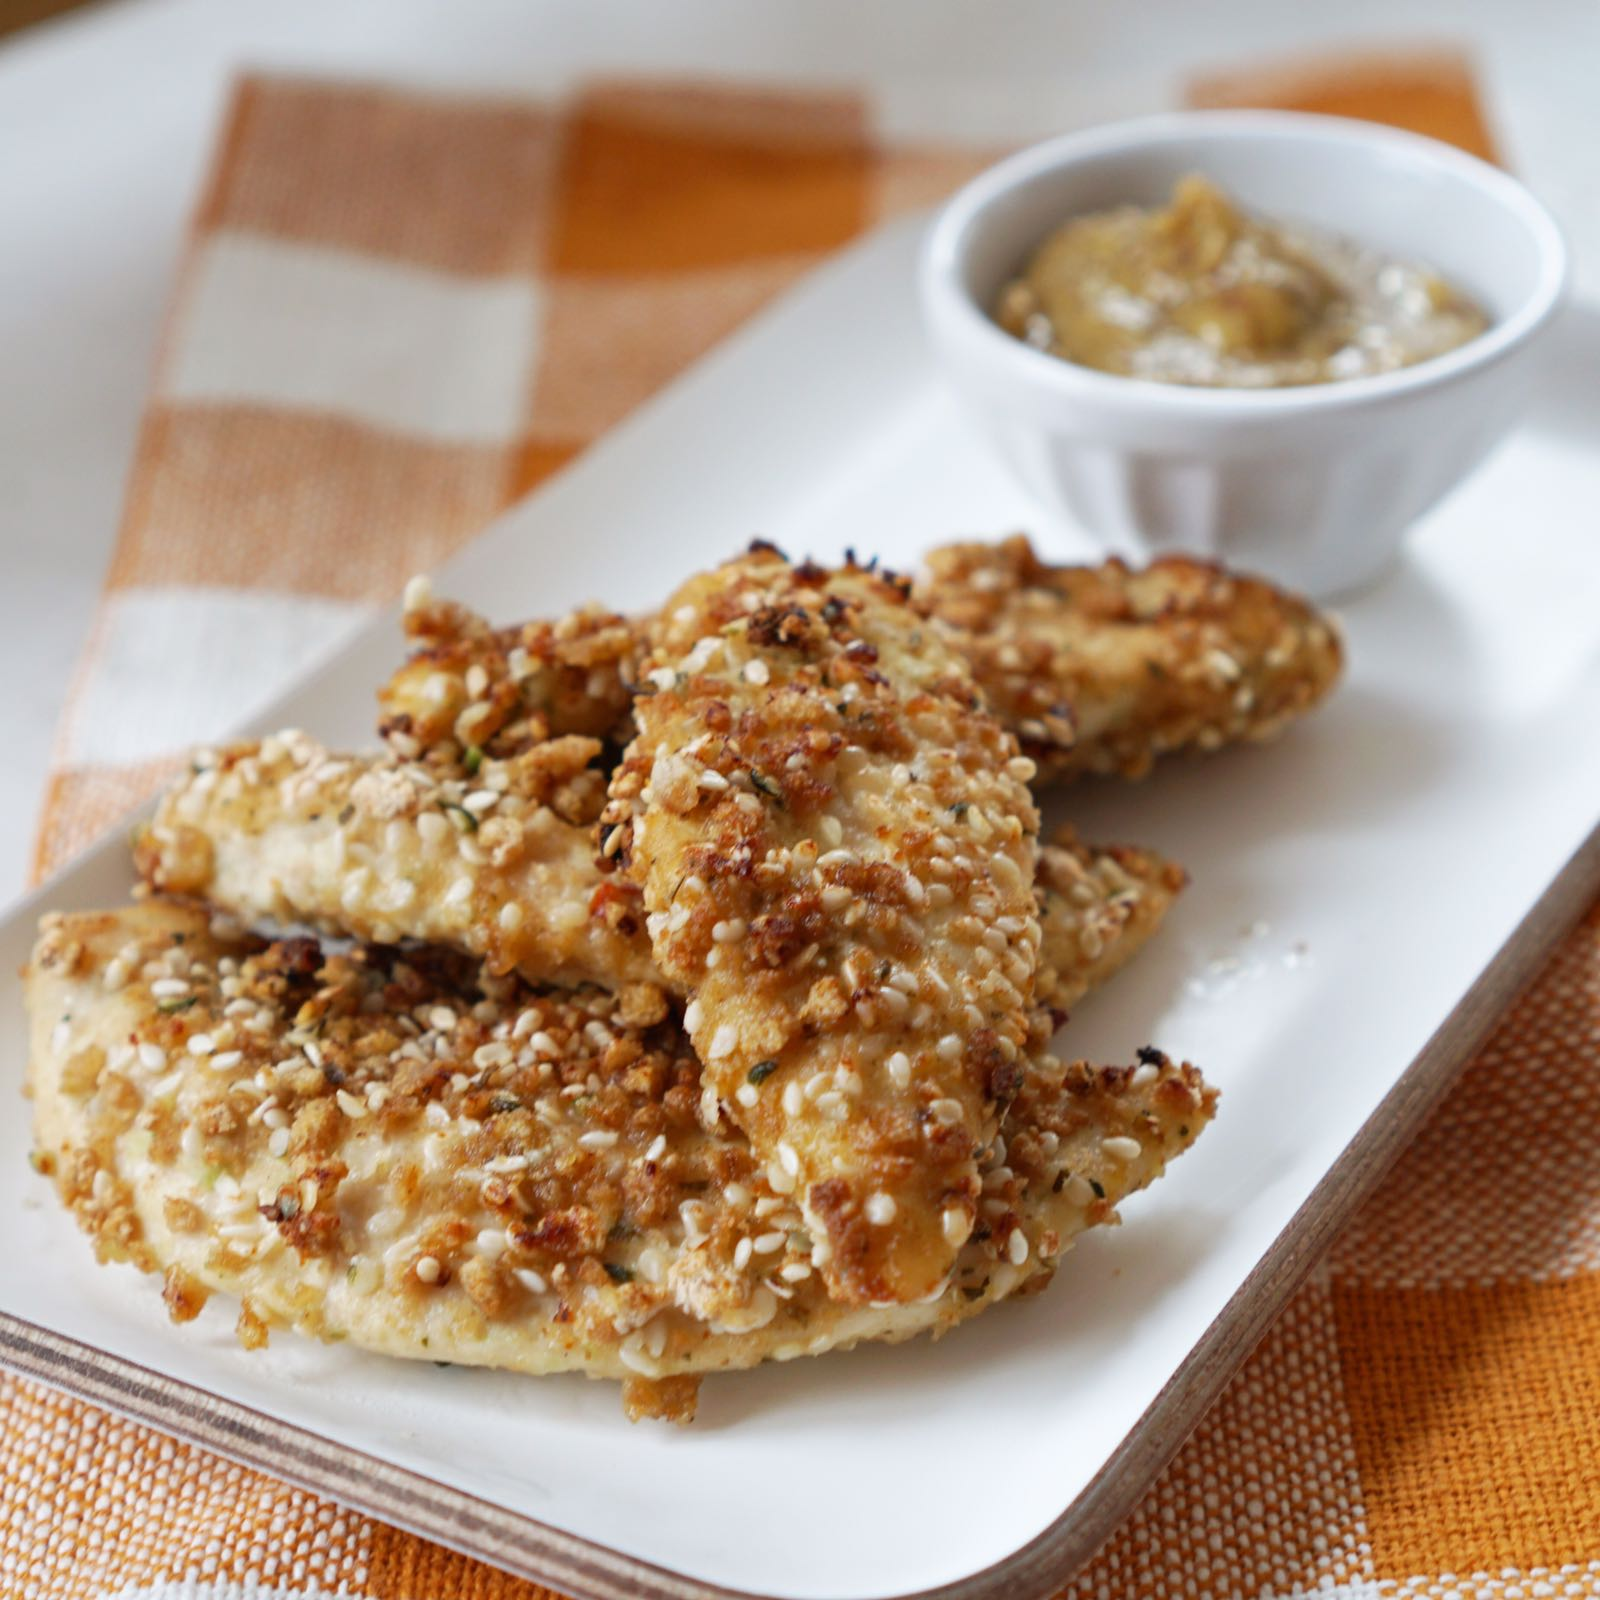 HEALTHY DINNER IDEA: UPGRADED NUGGETS